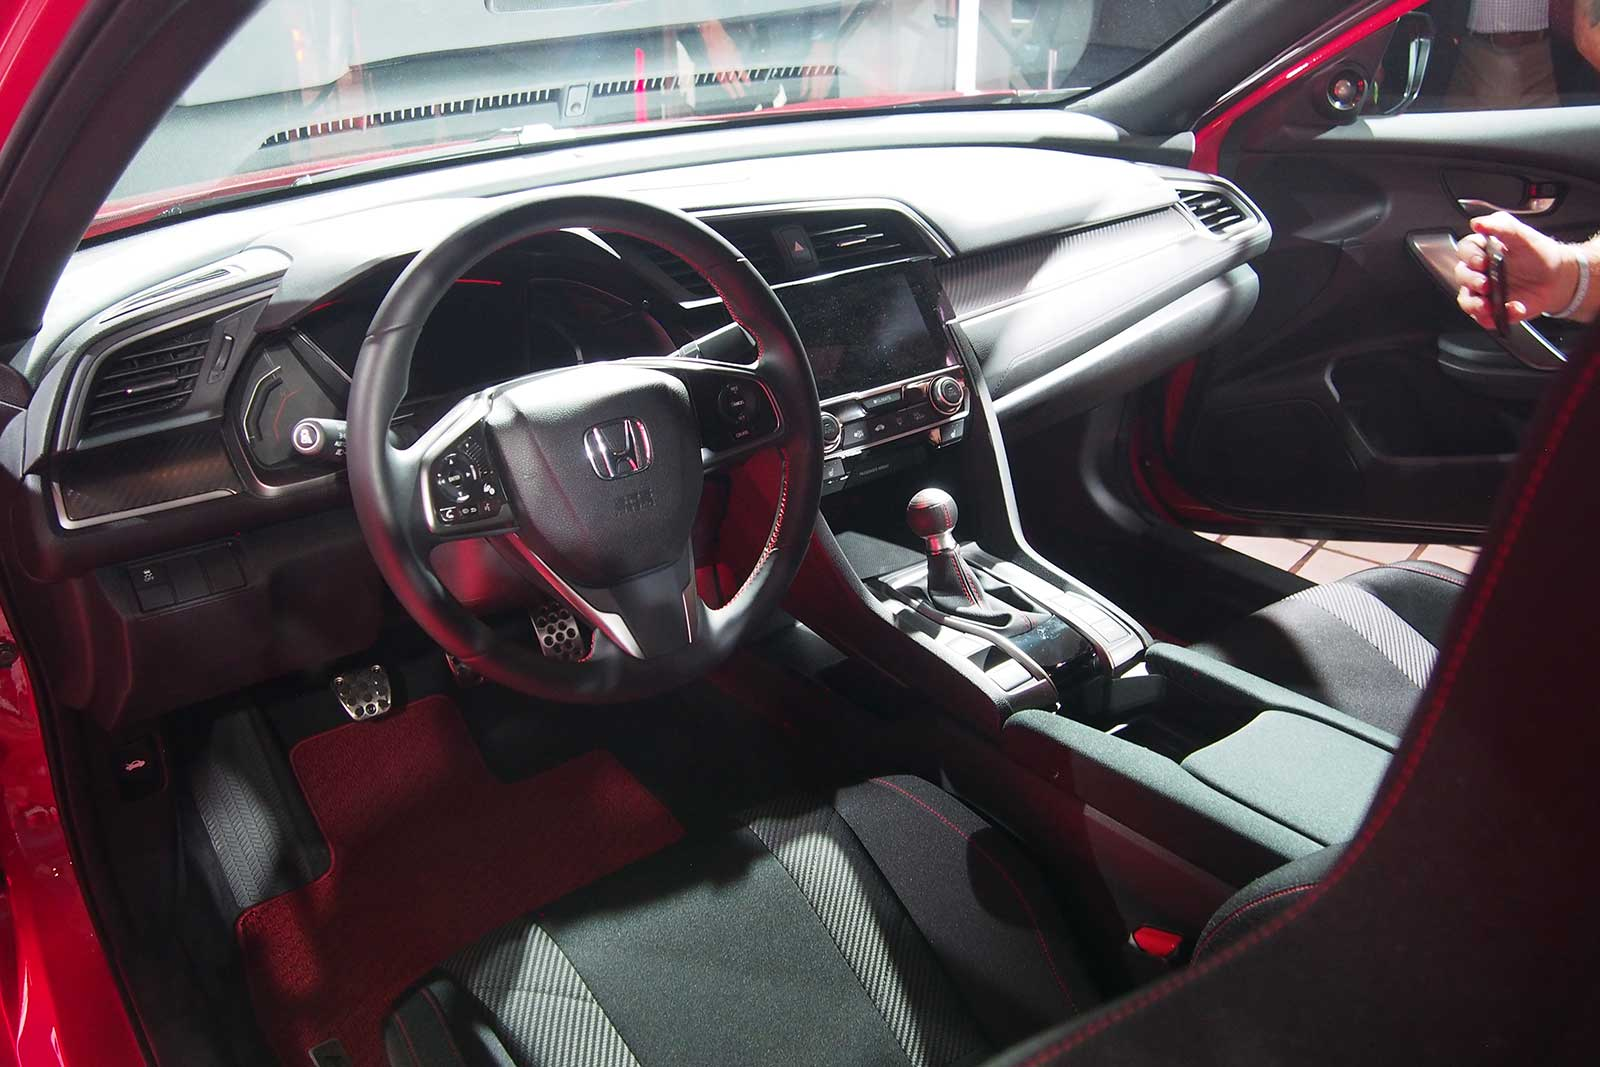 honda civic si hatchback interior honda civic si hatchback interior with honda civic si. Black Bedroom Furniture Sets. Home Design Ideas